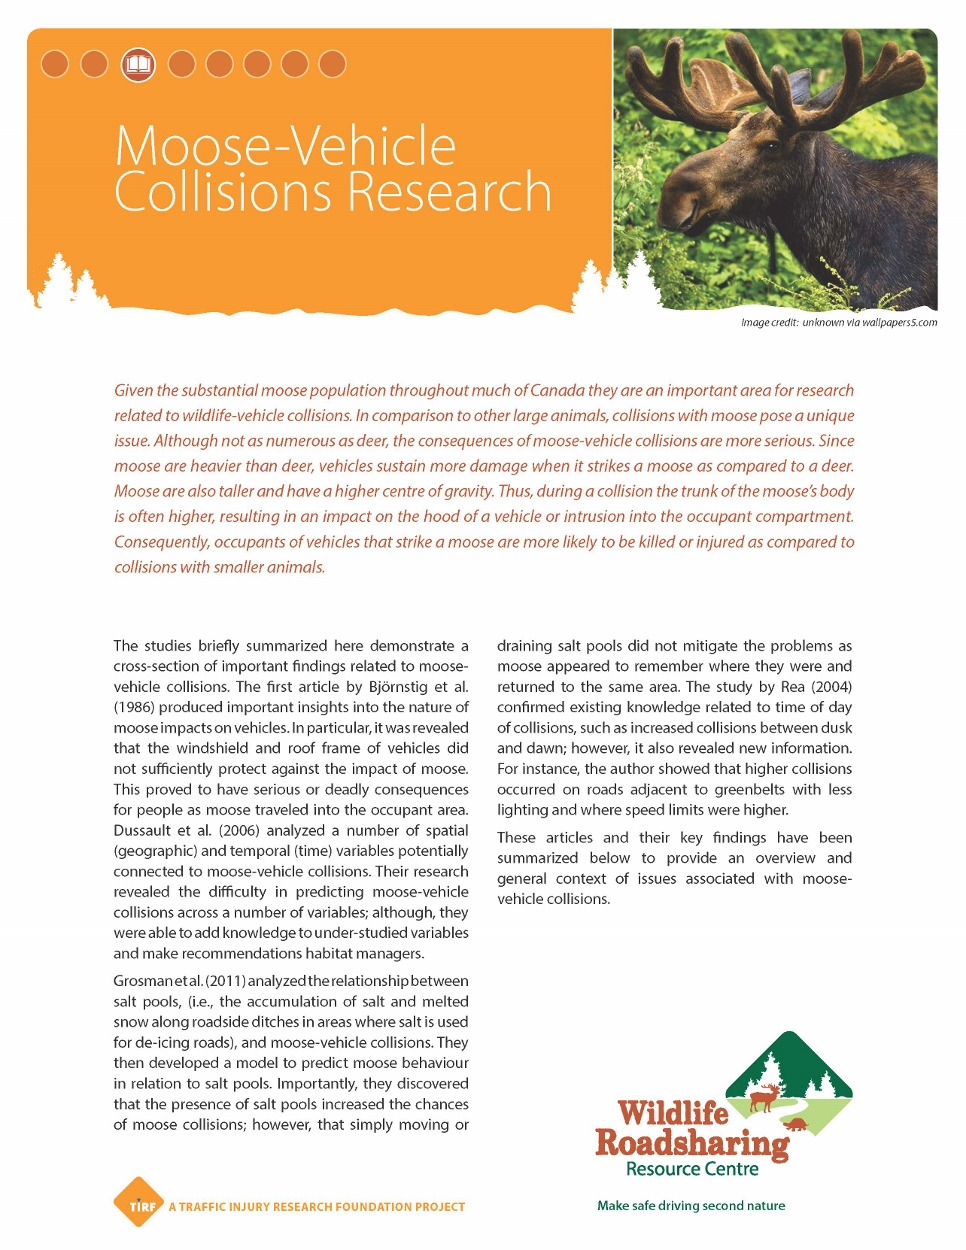 WVC Moose-Vehicle Collisions Research Handout